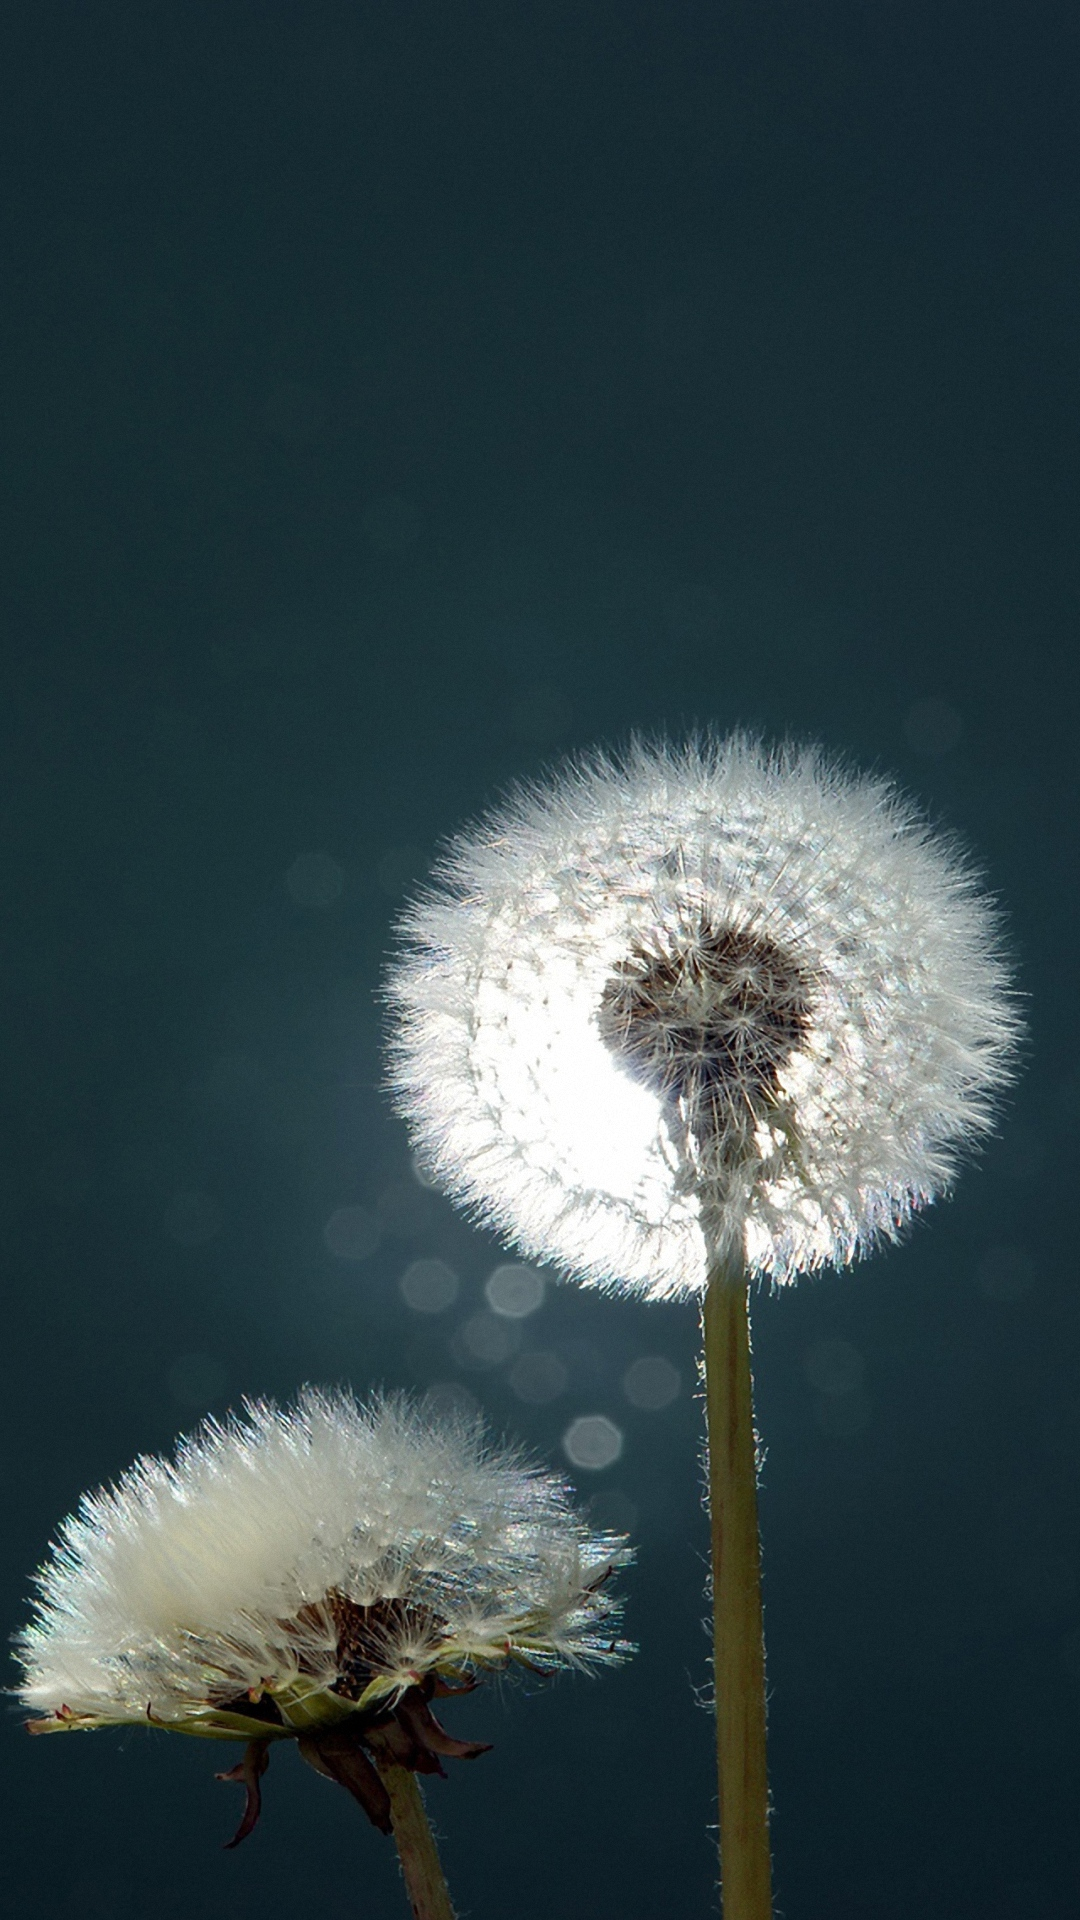 download dandelions close up wallpaper for samsung galaxy note 3 1080x1920